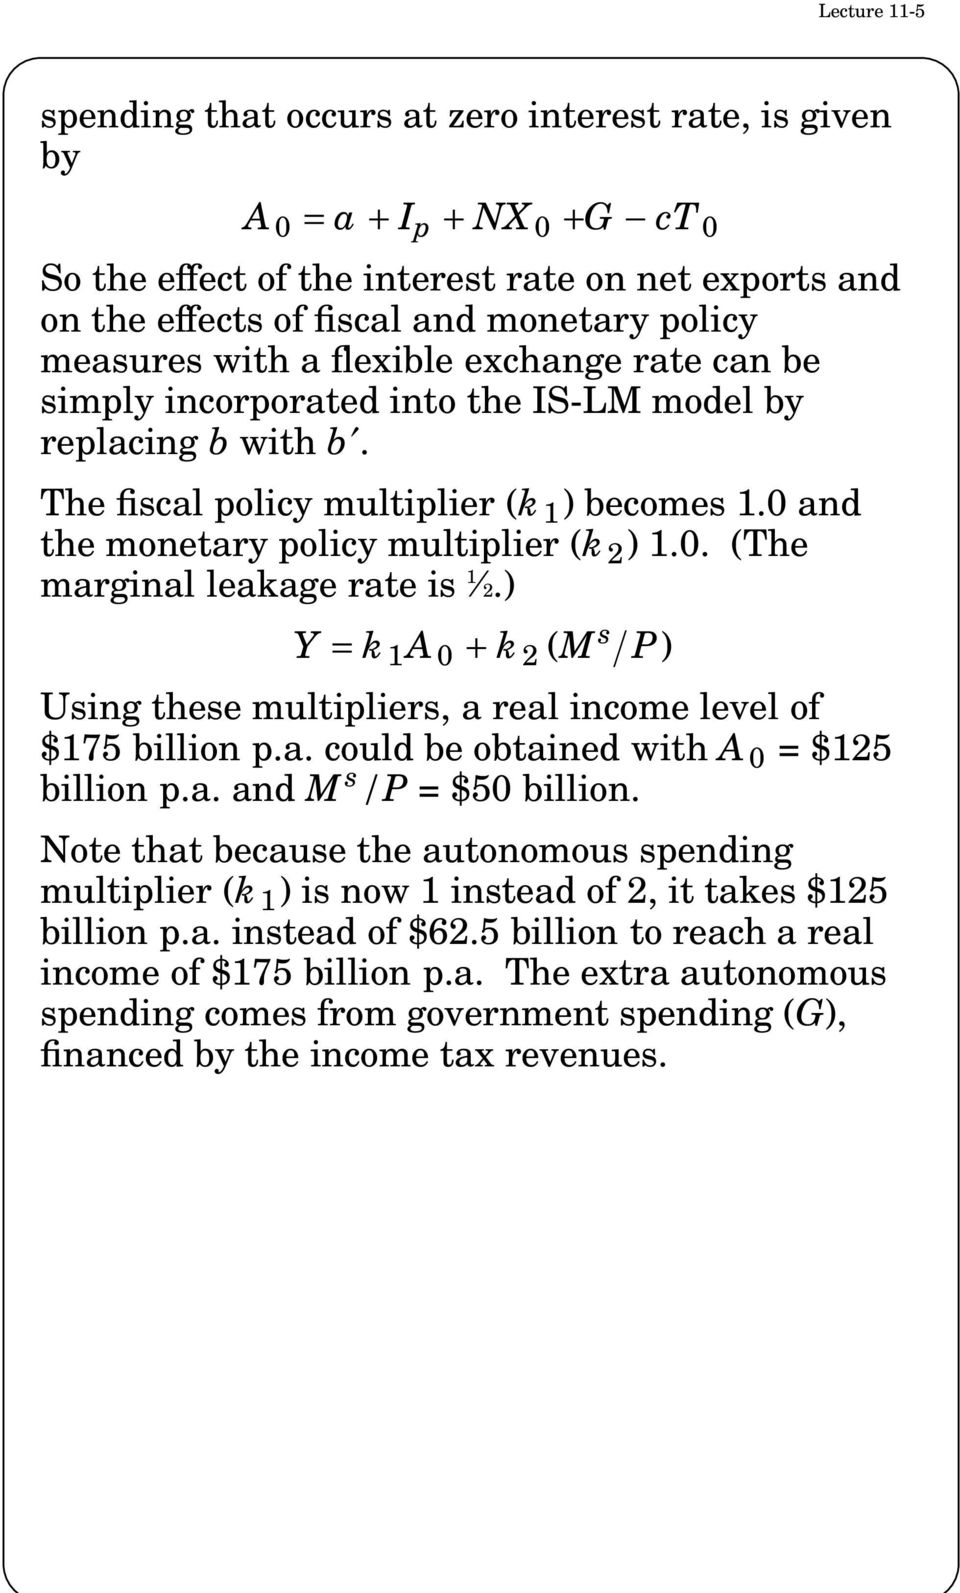 0 and the monetary policy multiplier (k 2 ) 1.0. (The 1 marginal leakage rate is 2.) Y = k 1 A 0 + k 2 (M s P) Using these multipliers, a real income level of $175 billion p.a. could be obtained with A 0 = $125 billion p.